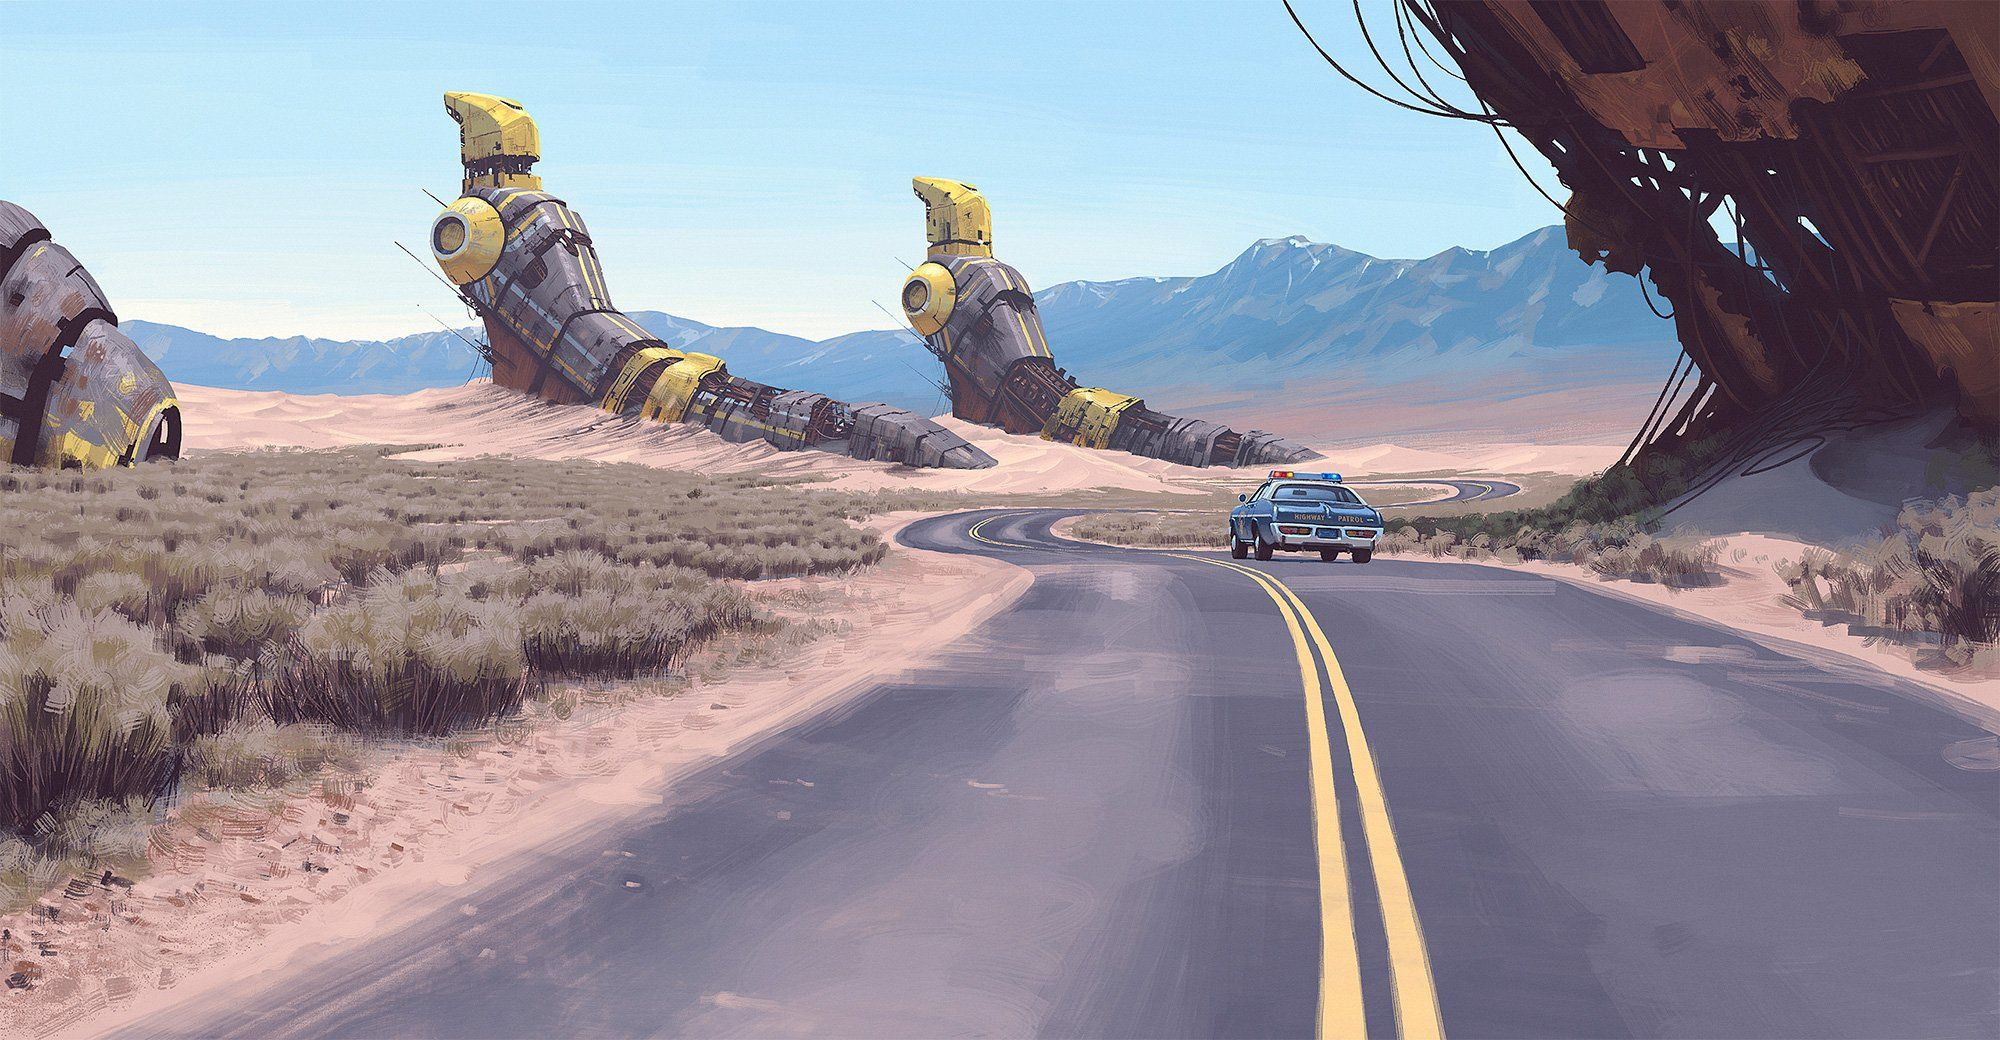 Simon Stalenhag S Incredible New Paintings Show An Alien